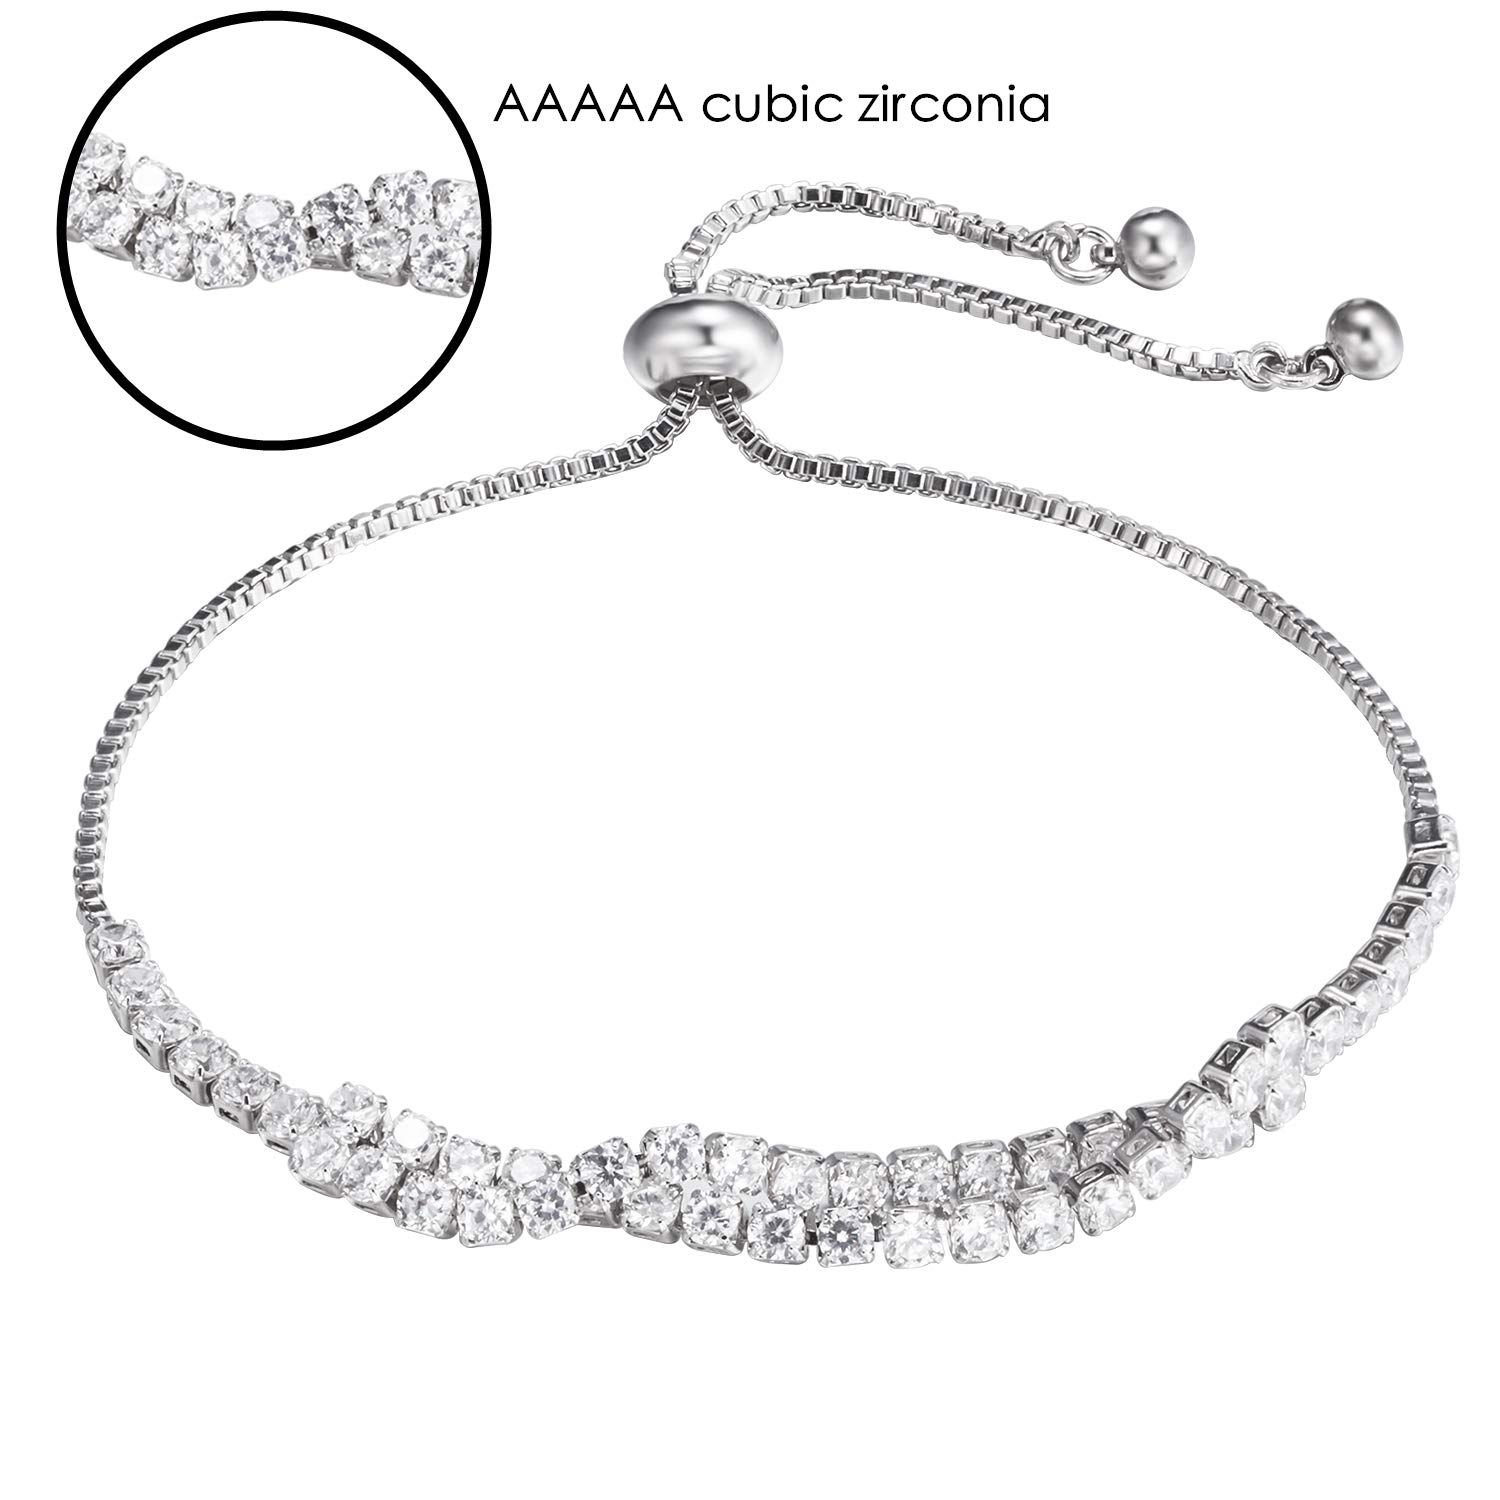 925 Sterling Silver Adjustable Chain Bracelets for Girls Women Pulseras Mujer Wedding Crystal Bracelet Charm Femme Party Fine Jewelry Friend Gift